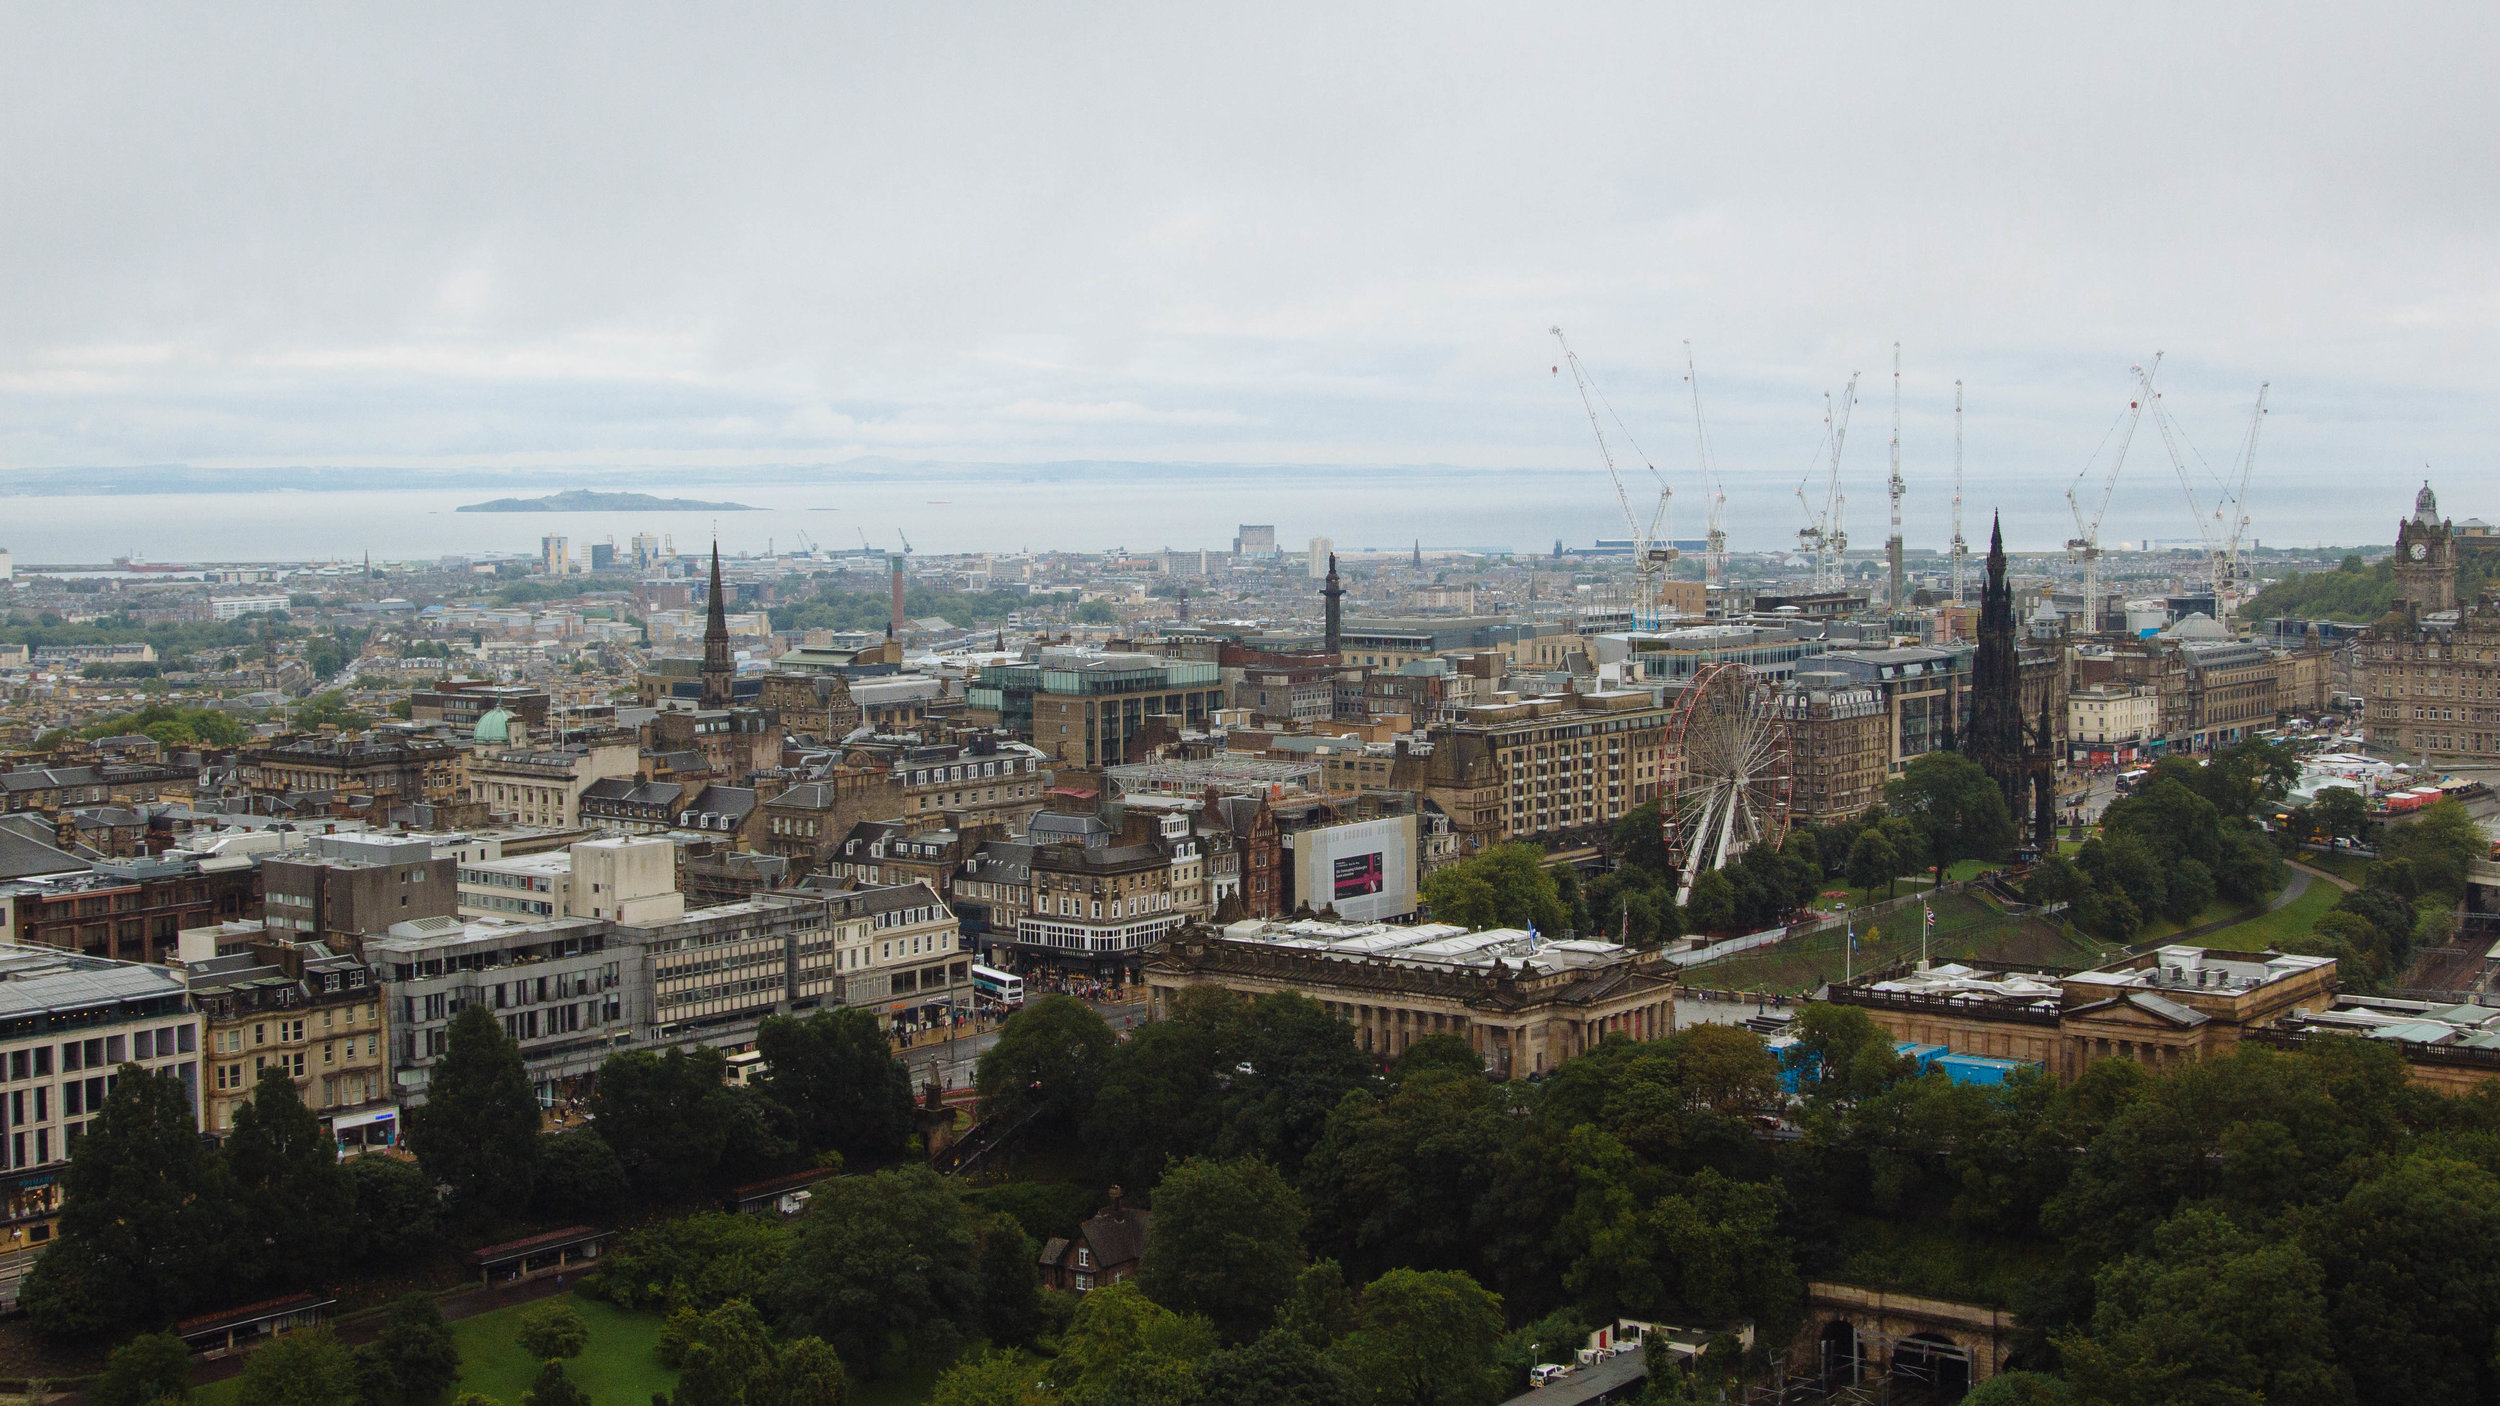 View of city skyline from Edinburgh Castle